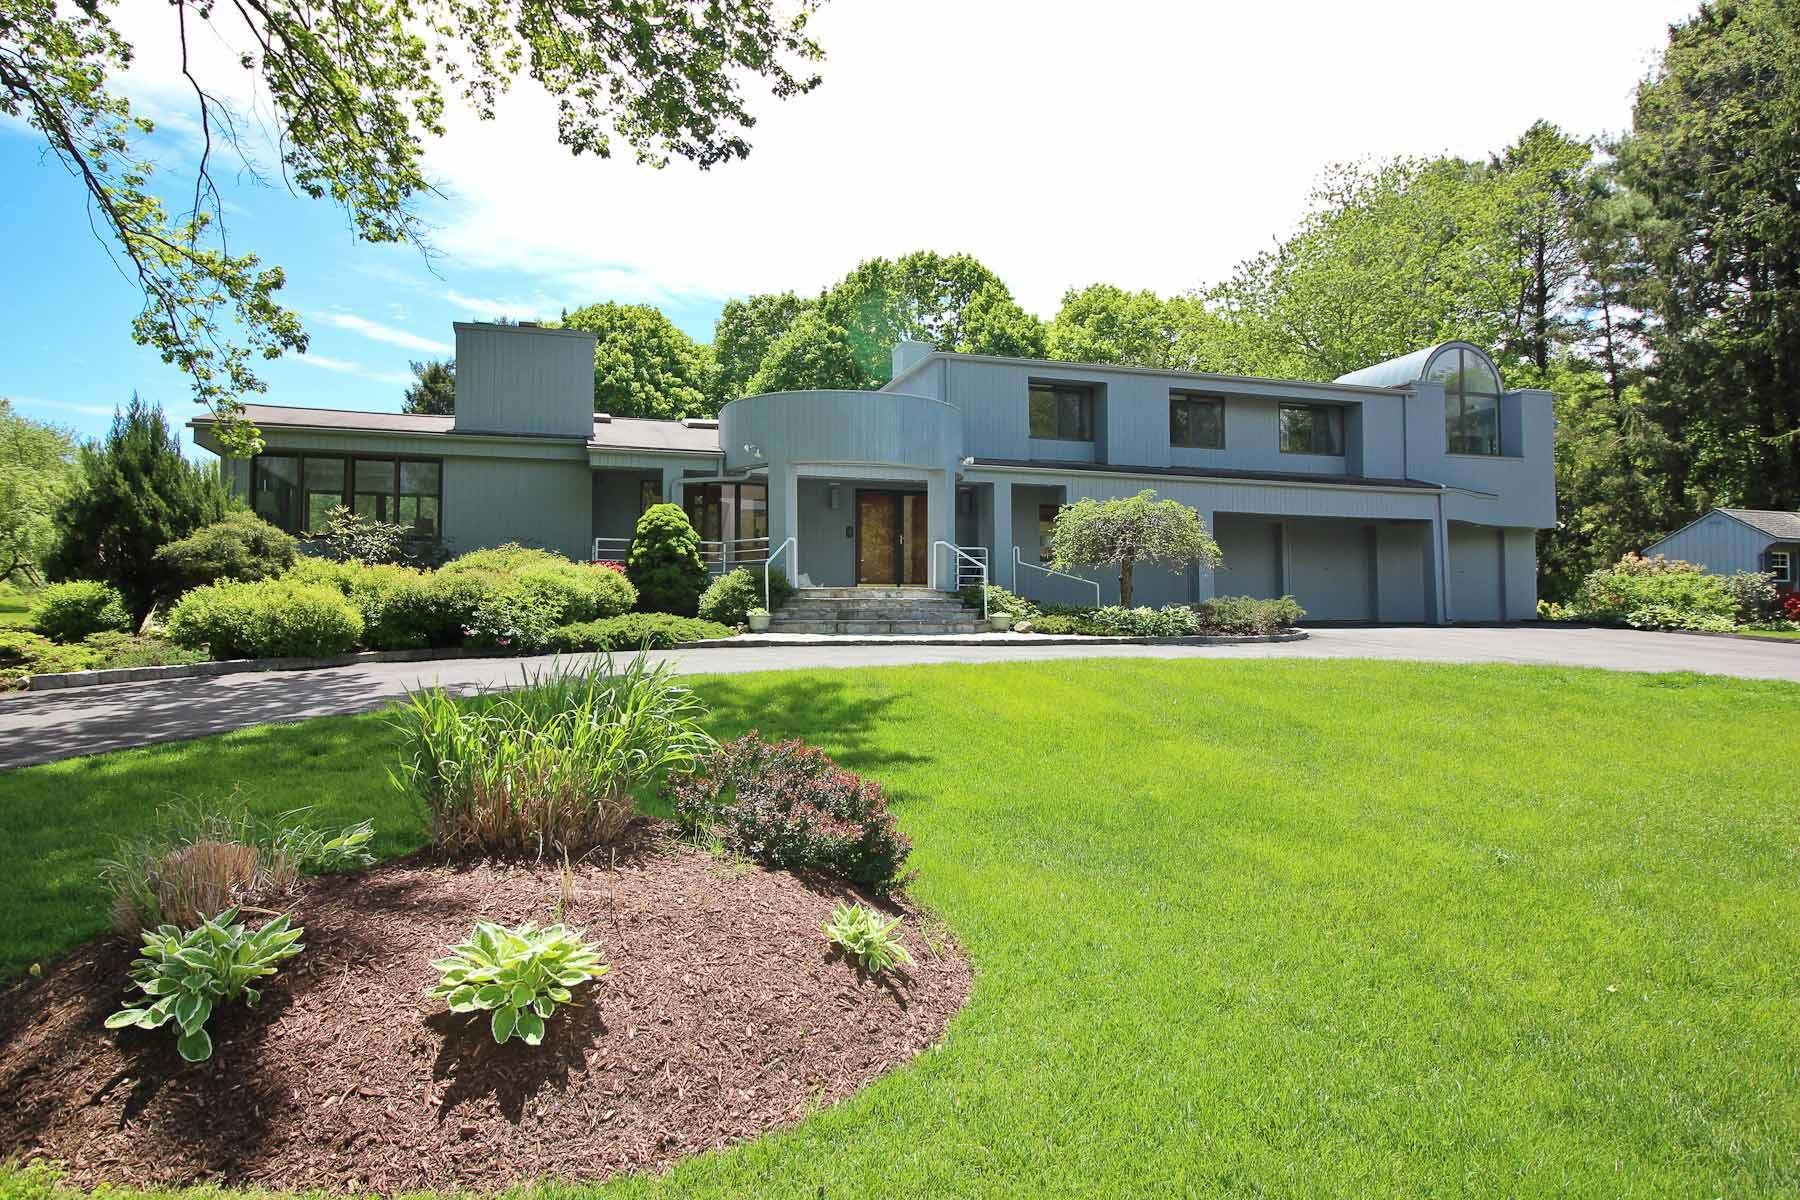 Contemporary homes for sale in westport ct find and buy for Modern architecture homes for sale